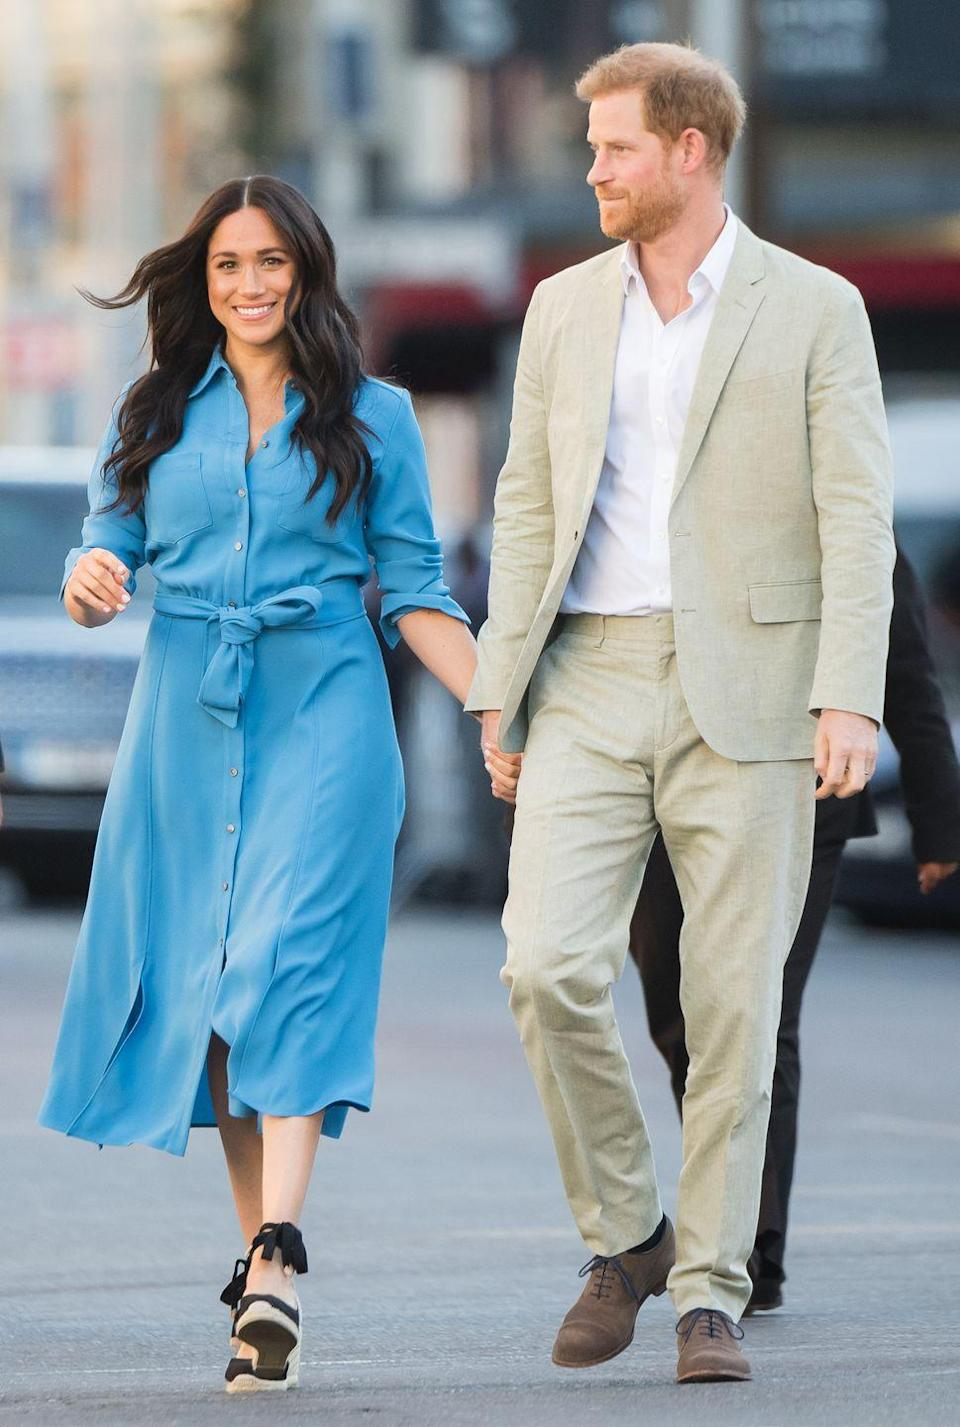 """<p>For her second engagement of the day, Meghan changed<a href=""""https://www.townandcountrymag.com/style/fashion-trends/a29190740/meghan-markle-blue-veronica-beard-dress-cape-town-photos/"""" rel=""""nofollow noopener"""" target=""""_blank"""" data-ylk=""""slk:into a gorgeous blue Veronica Beard dress"""" class=""""link rapid-noclick-resp""""> into a gorgeous blue Veronica Beard dress</a>, which the Duchess previously wore in Tonga last year. Meghan paired the striking outfit with the same black espadrilles she wore earlier in the day.</p>"""